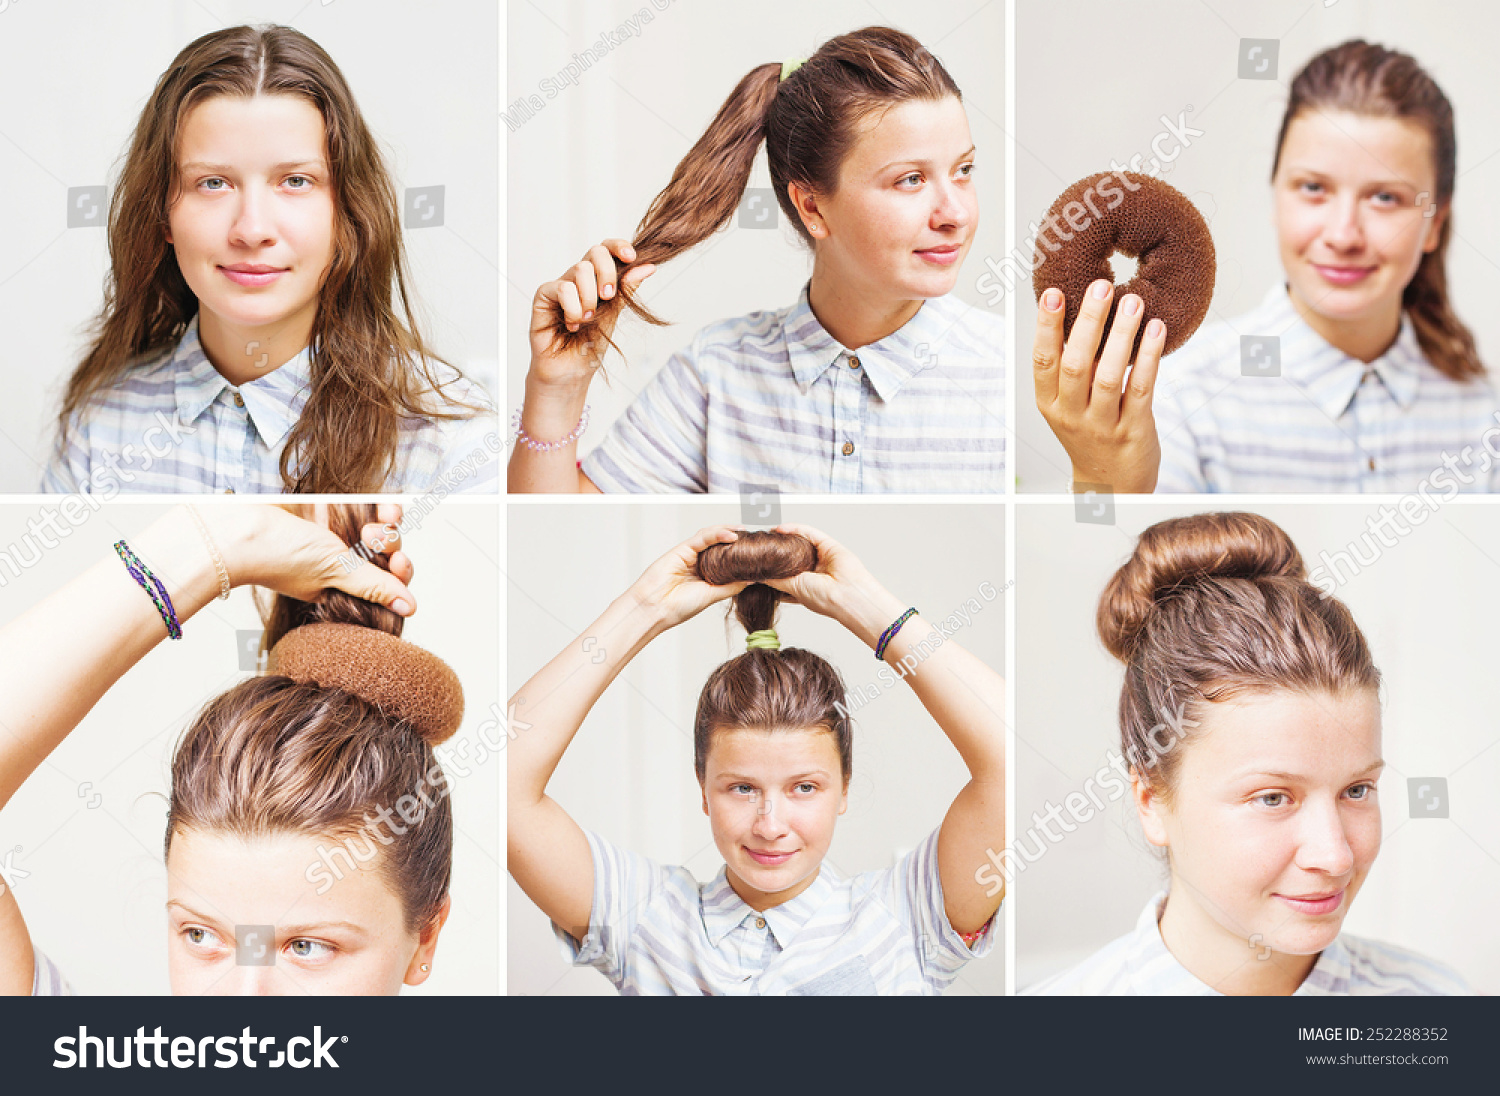 Hairstyle Tutorial By Beauty Blogger Vintage Stock Photo Edit Now